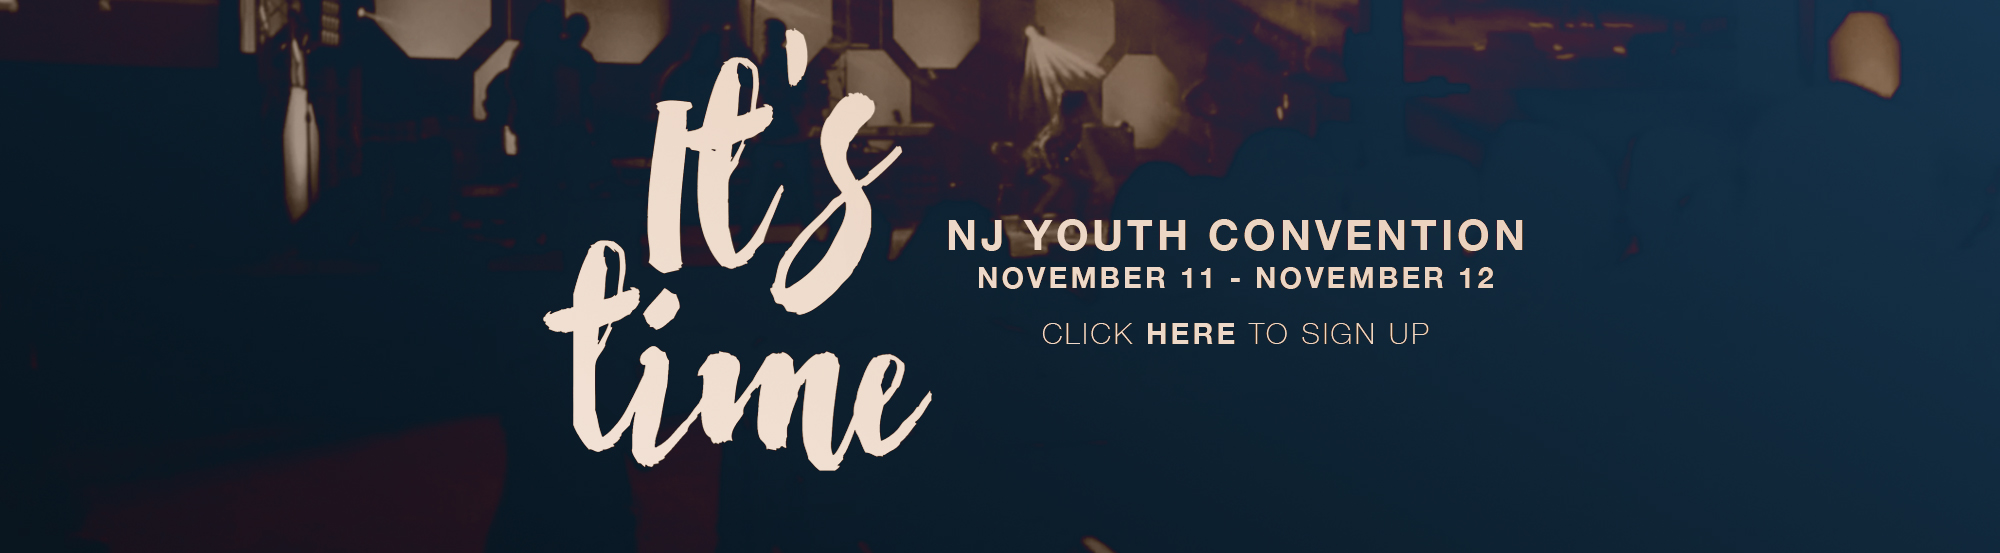 nj-youth-convention-2016-main